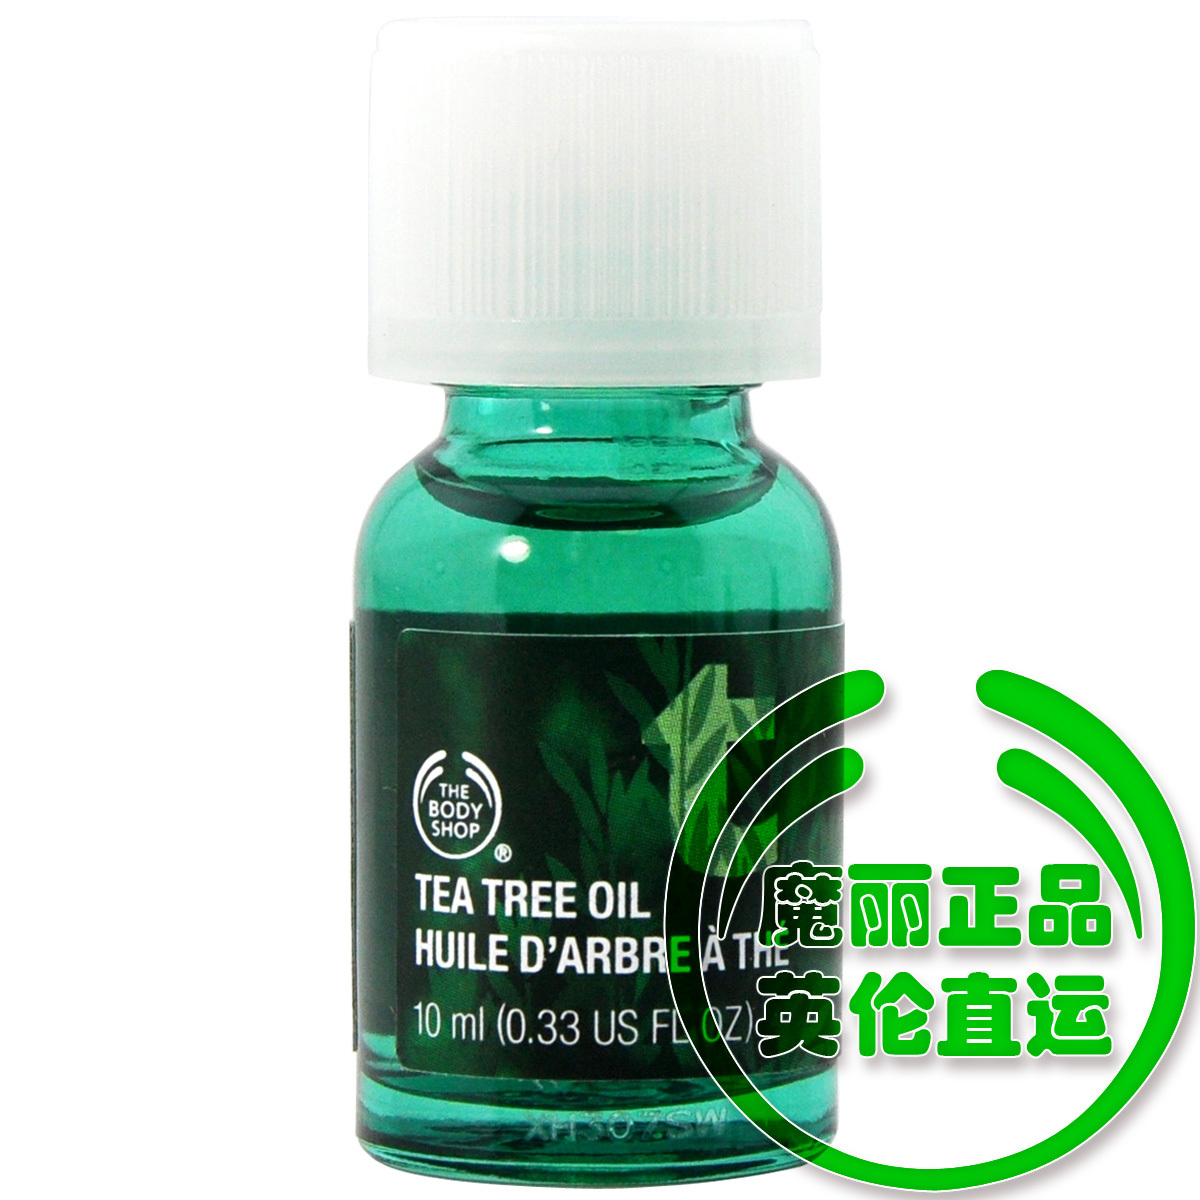 Tea Tree Oil Body Shop The 10ml Crown Special